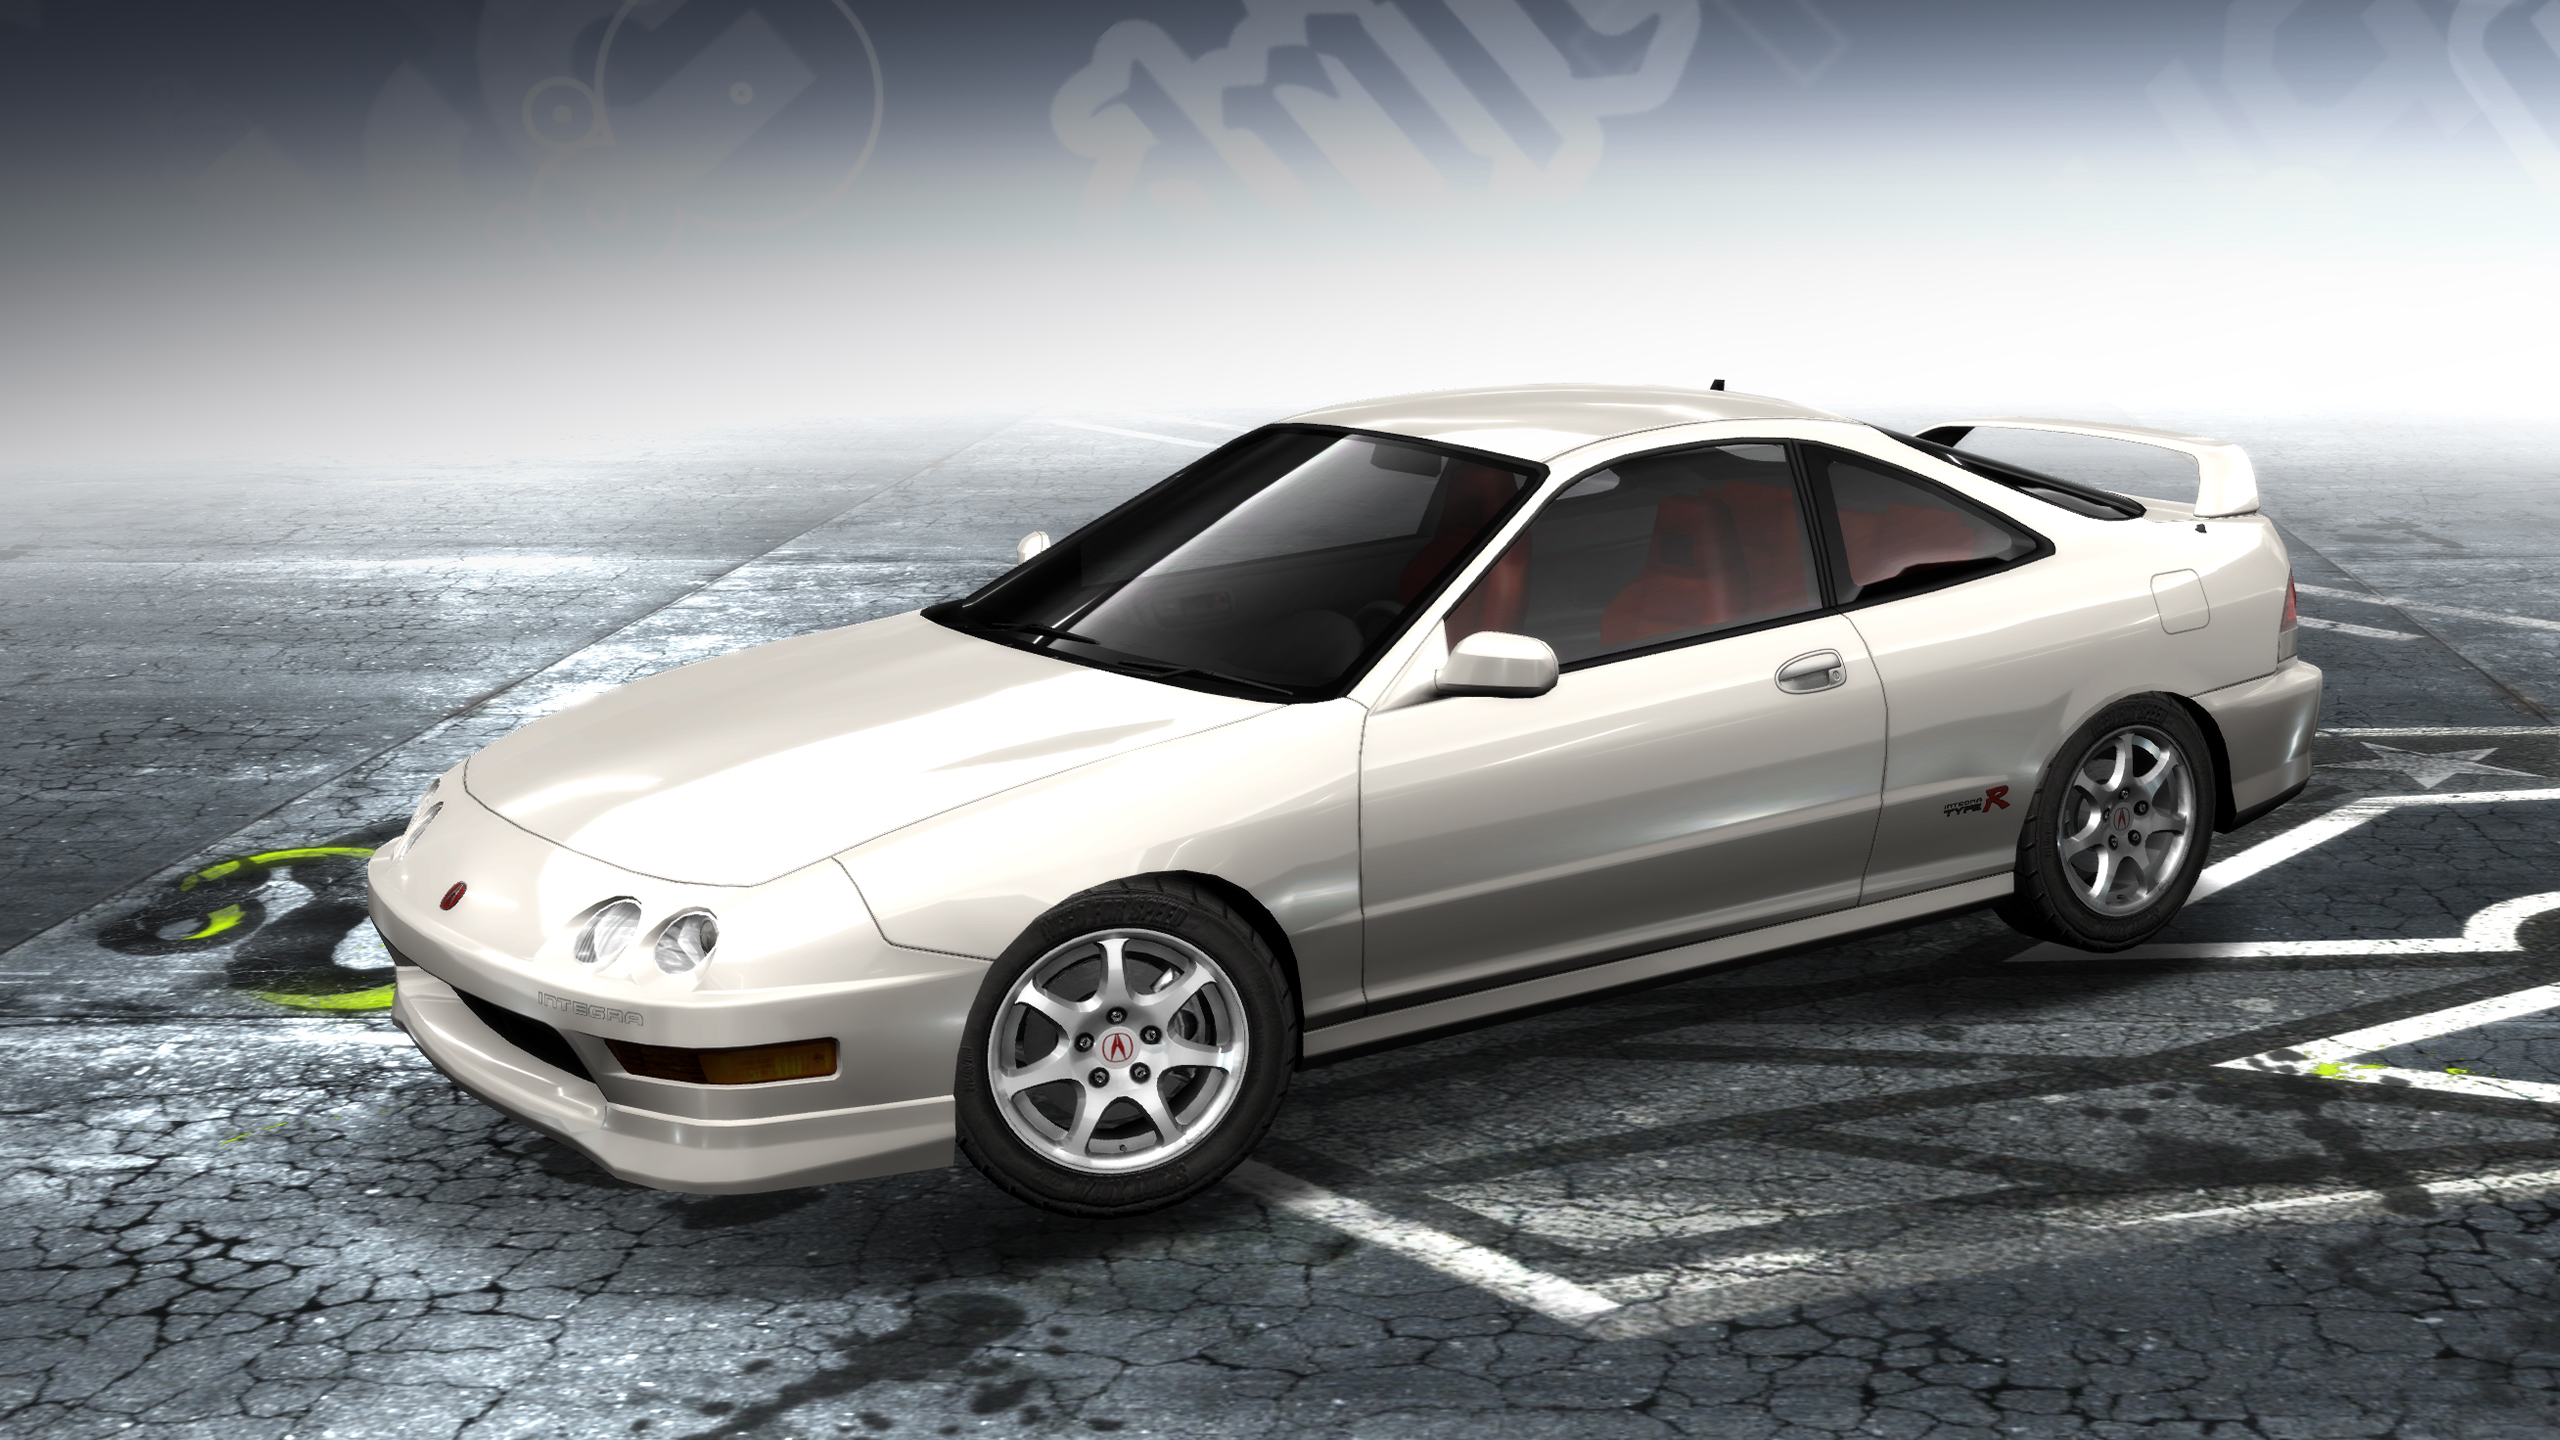 Acura Integra Type R Need For Speed Wiki FANDOM Powered By Wikia - Acura integra dc2 type r